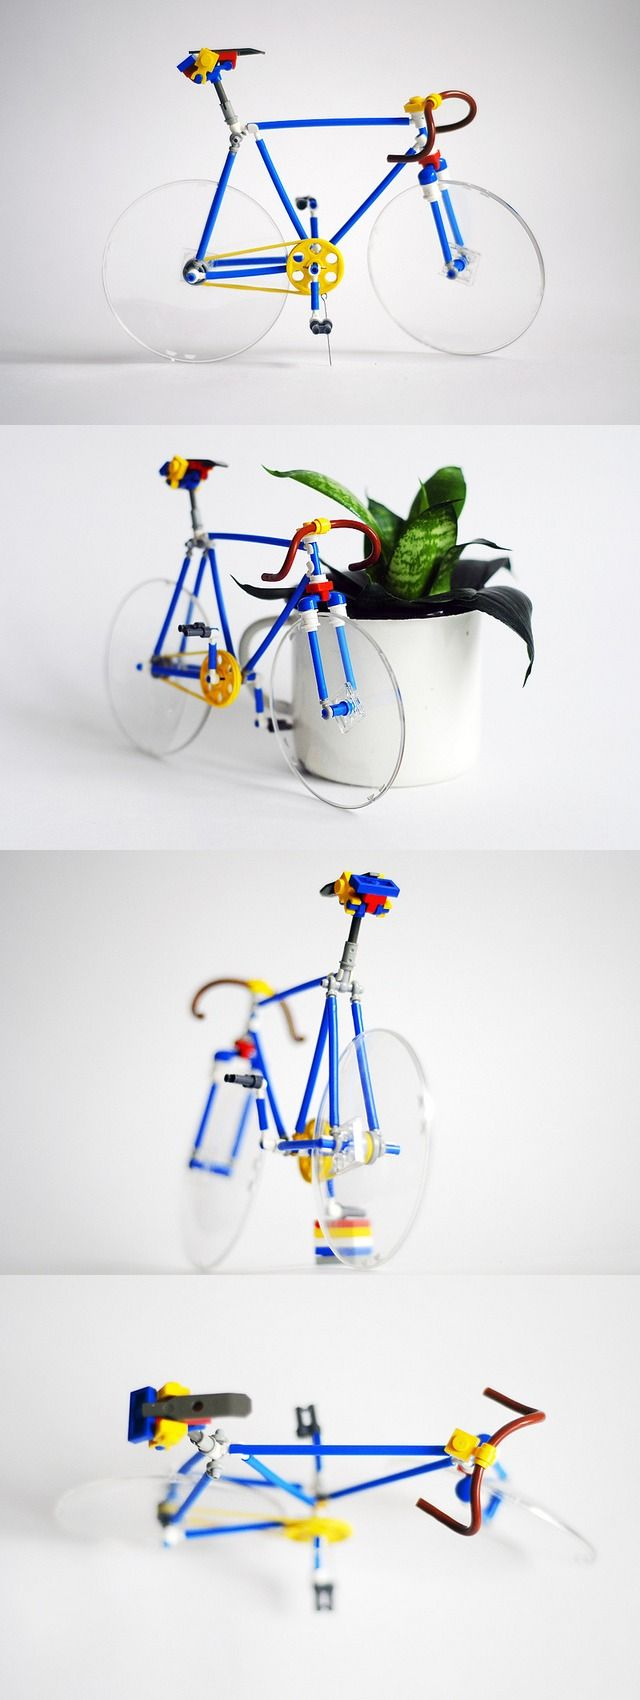 114 best fix a bike, go 4 a ride images on Pinterest | Bicycles ...